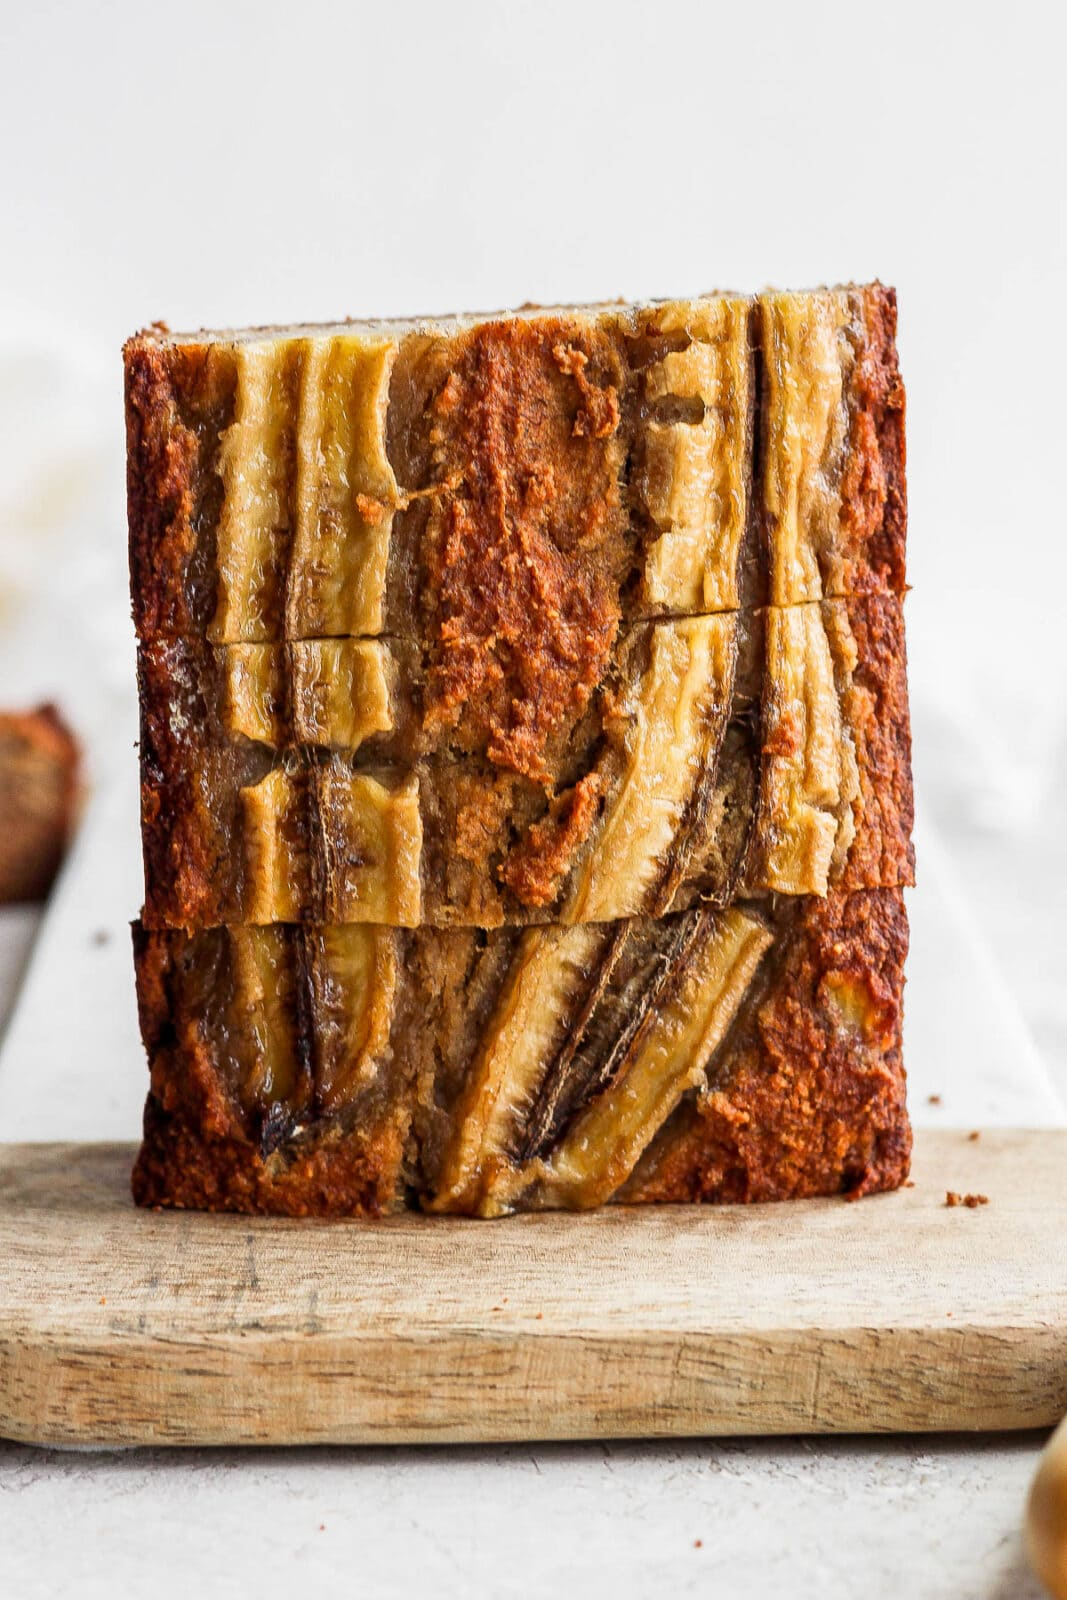 Slices of paleo banana bread stacked on a cutting board.